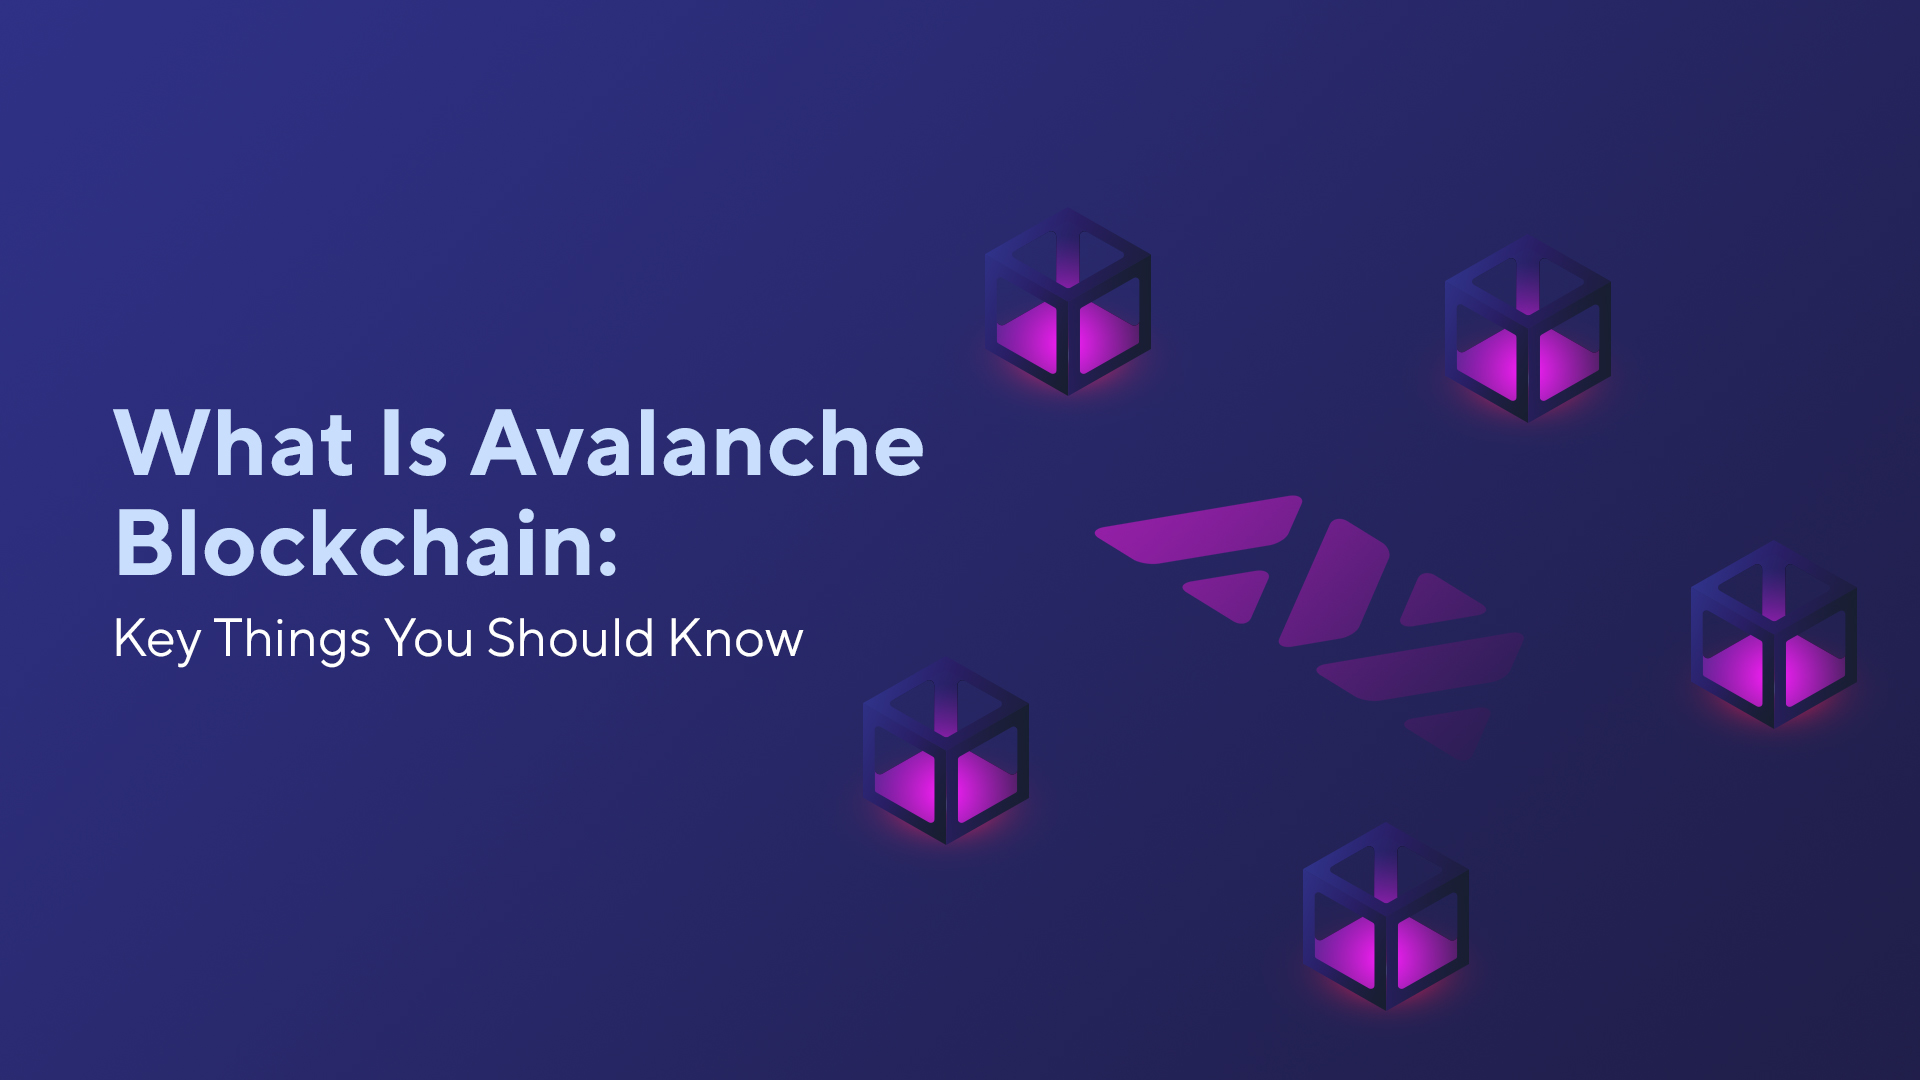 What Is Avalanche Blockchain: Key Things You Should Know